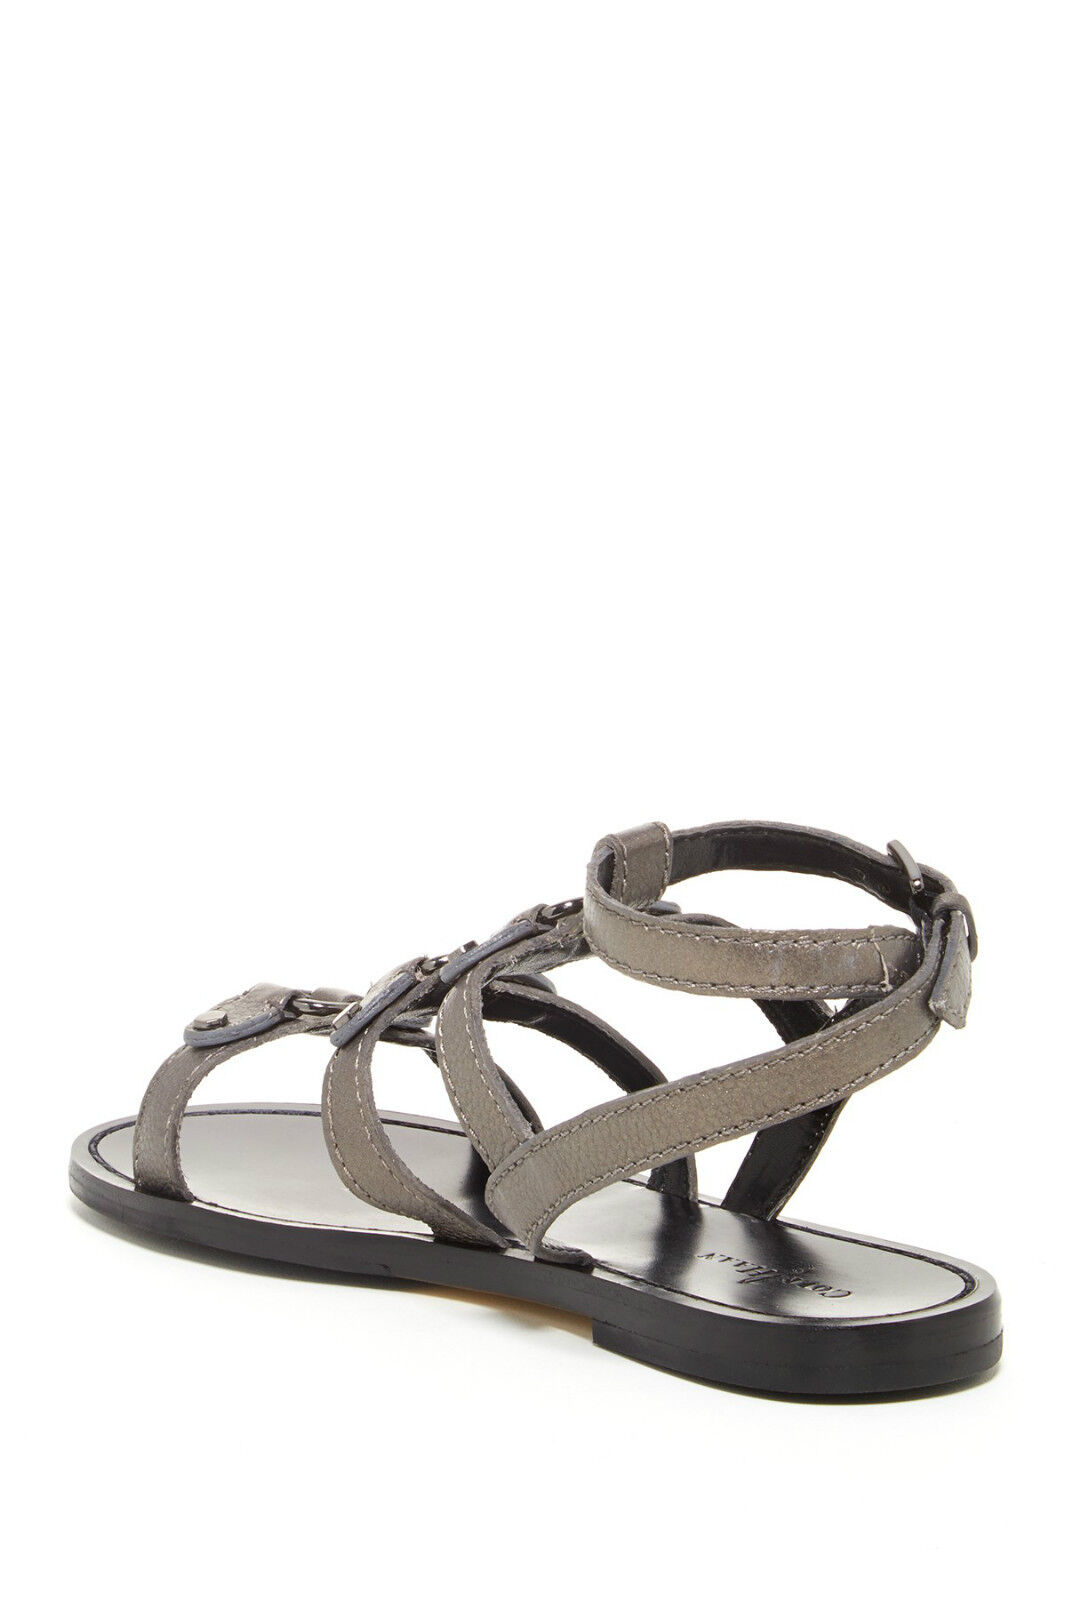 COLE HAAN DEANDRA GLADIATOR GUNSMOKE METALLIC SIZES Damenschuhe STRAPPY Schuhe MULTI SIZES METALLIC 66dc69